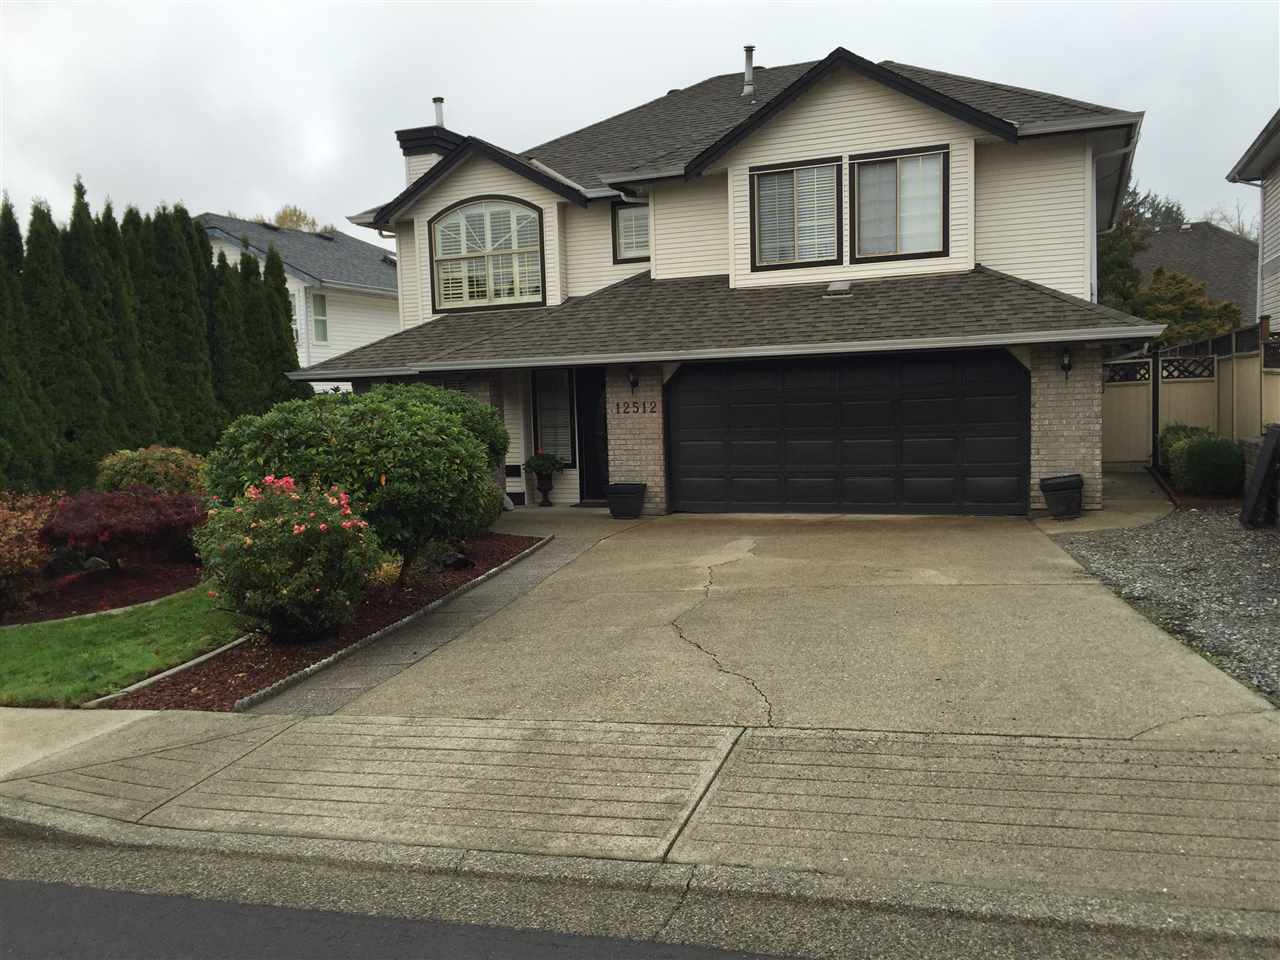 Main Photo: 12512 230 Street in Maple Ridge: East Central House for sale : MLS® # R2012676